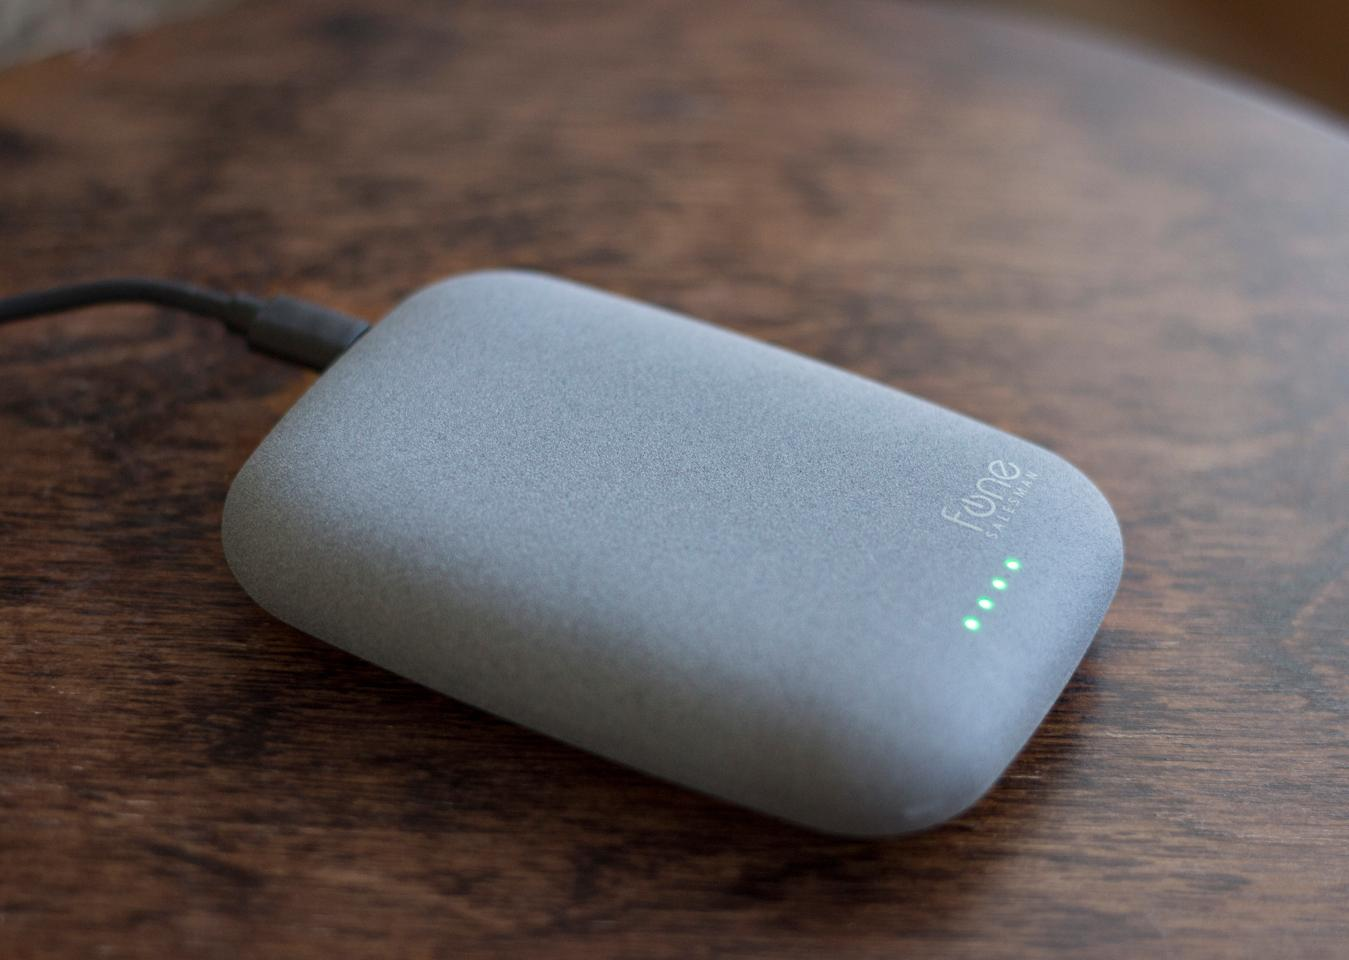 The Fonesalesman Qistone+ Wireless Power Bank (Photo: Will Shanklin/Gizmag.com)